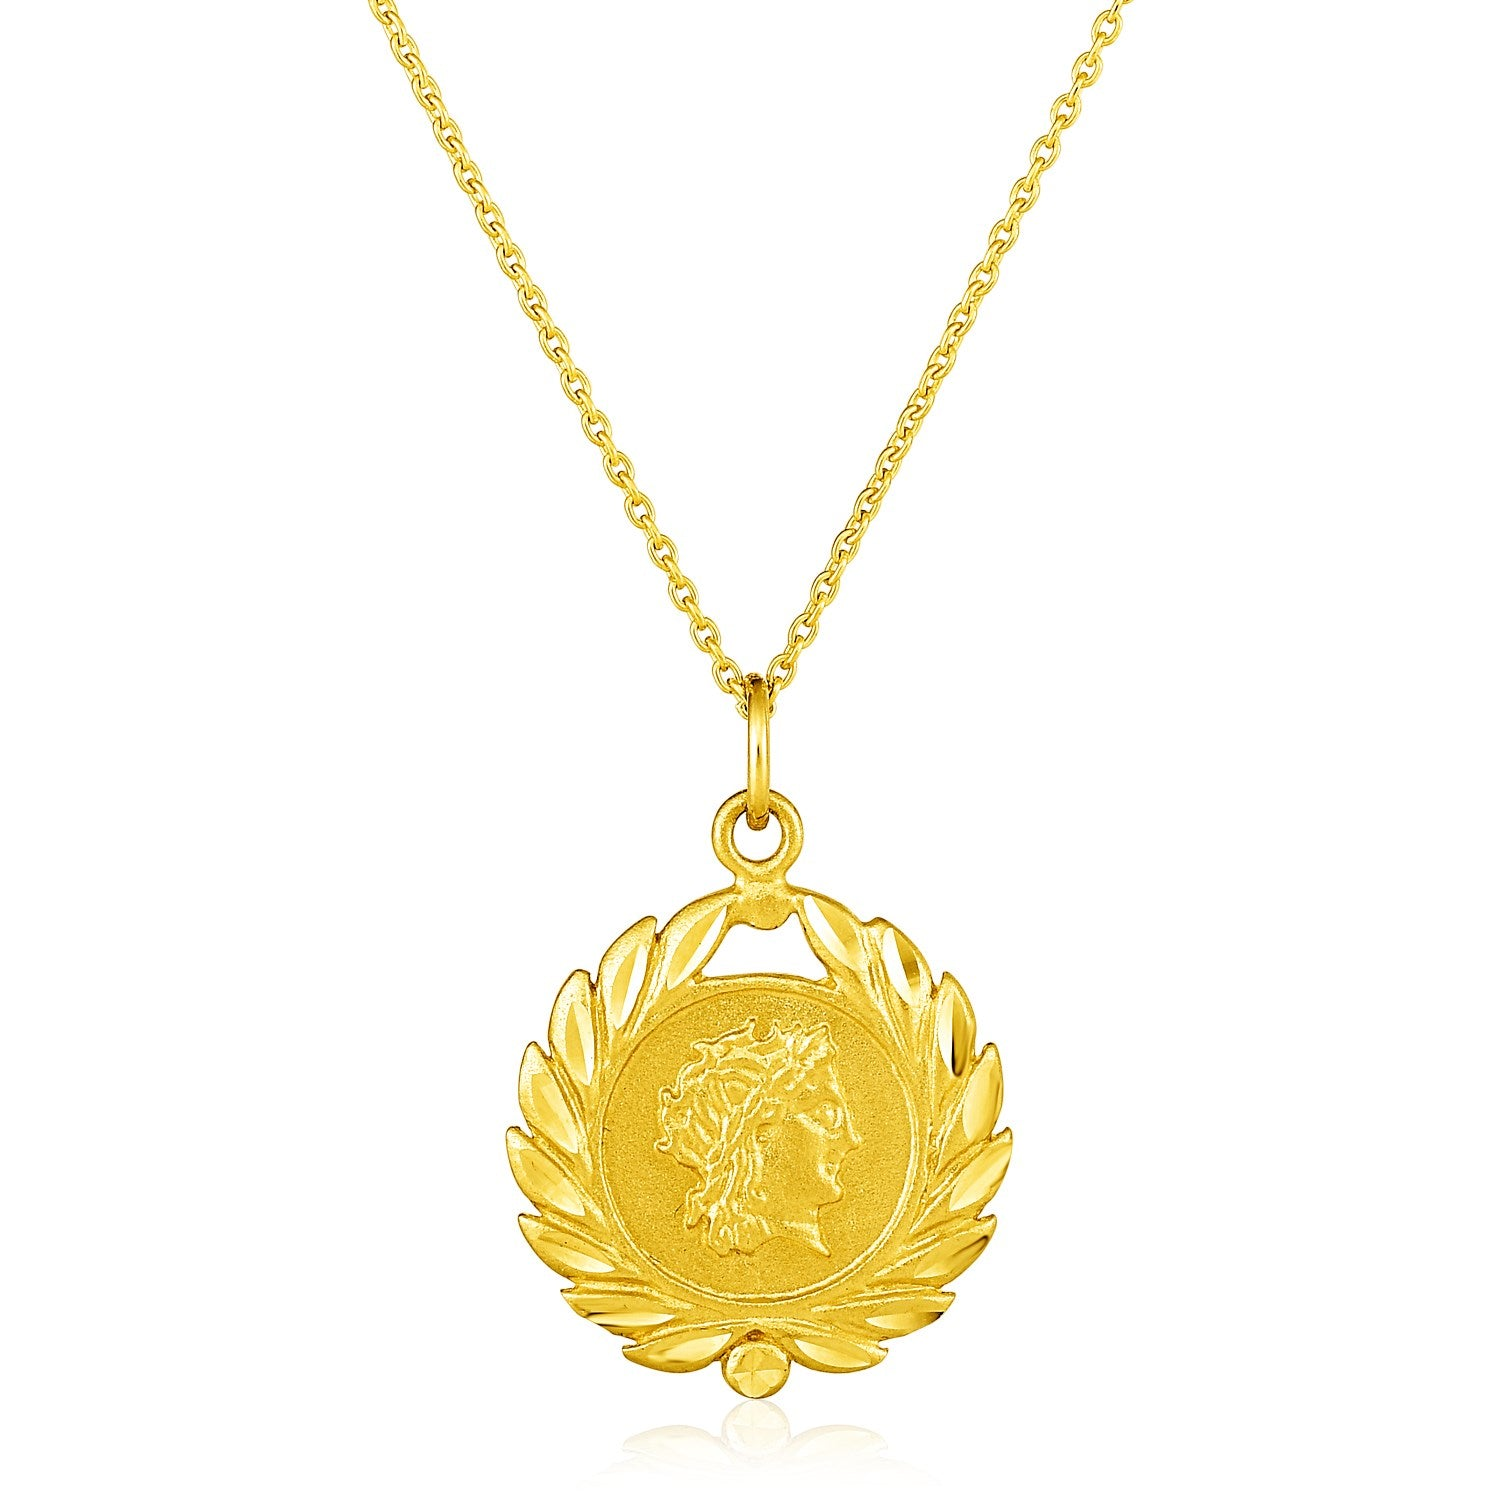 14k Yellow Gold with Roman Coin Pendant